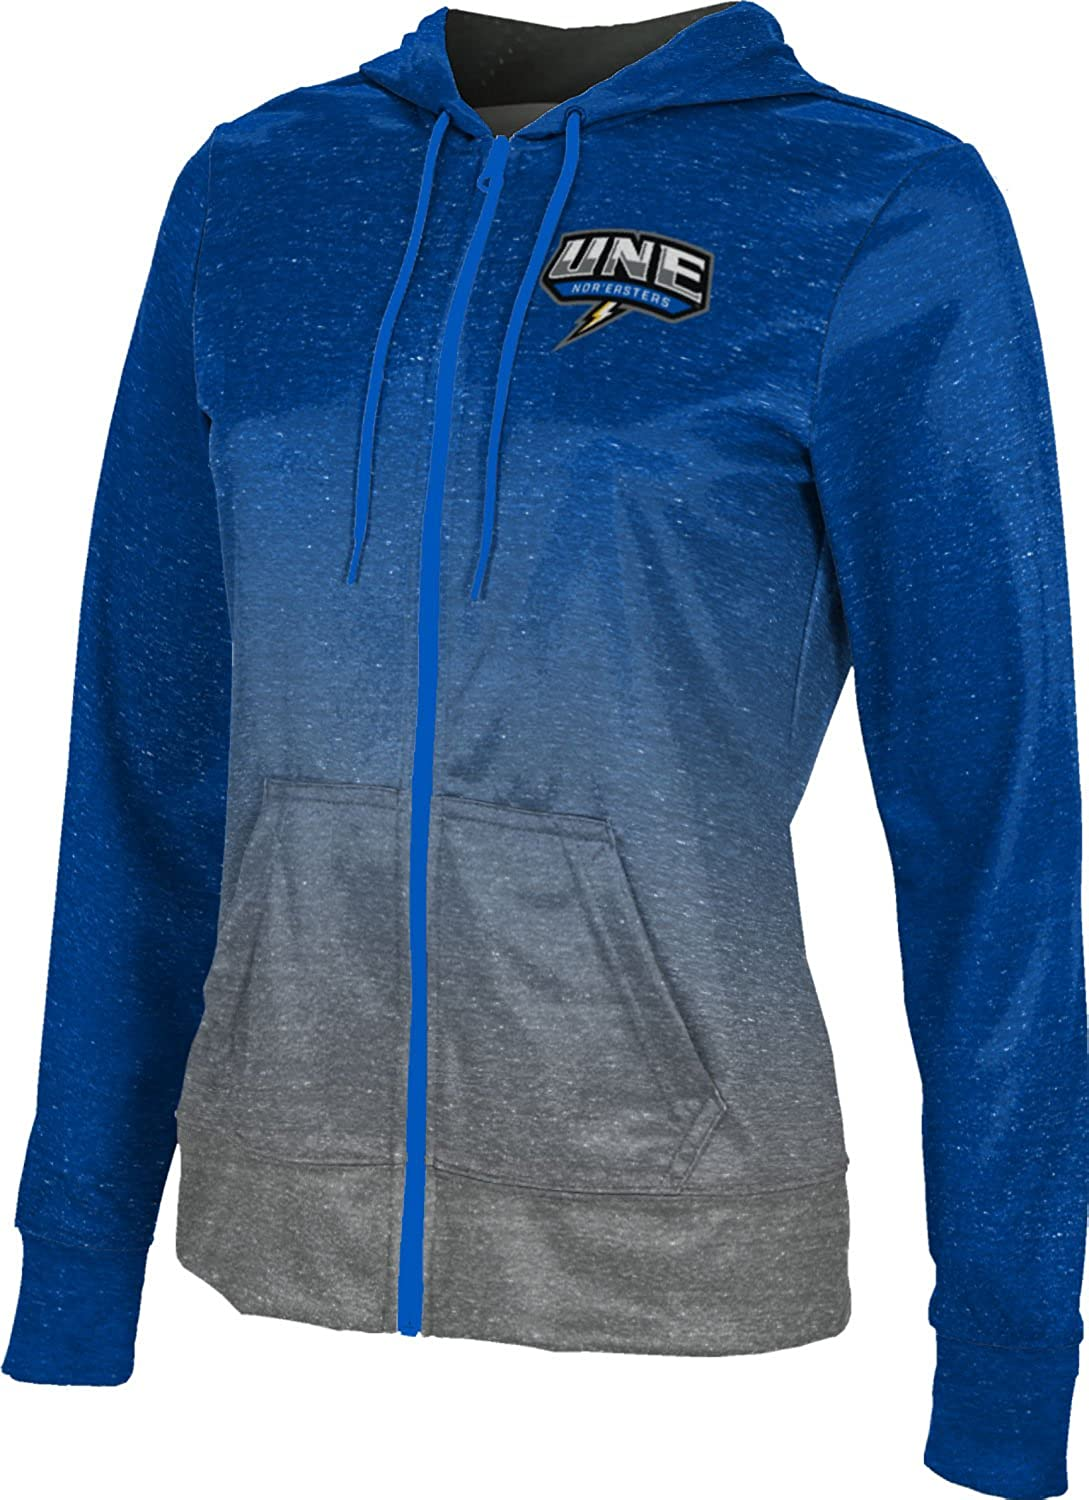 ProSphere University of New Indianapolis Mall England Schoo Zipper Women's Hoodie Today's only